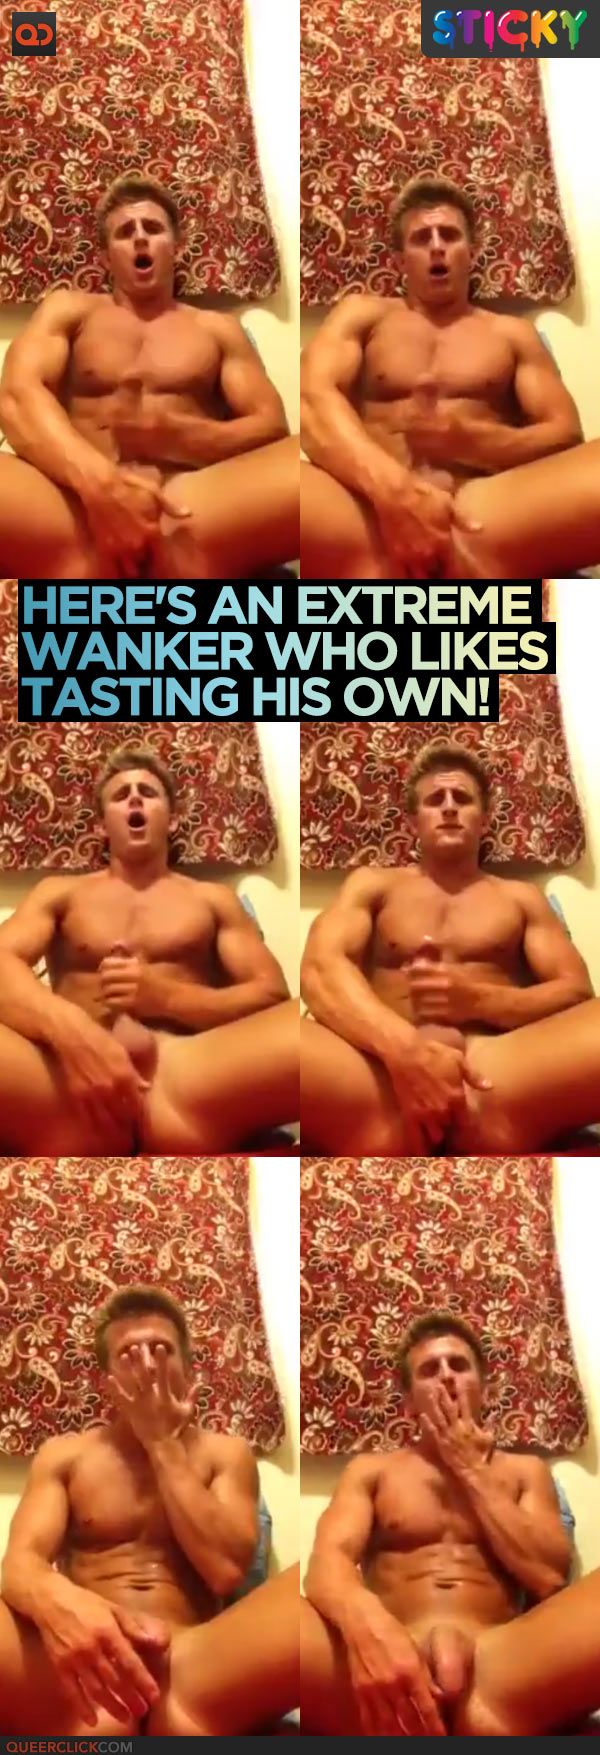 Here's An Extreme Wanker Who Likes Tasting His Own!